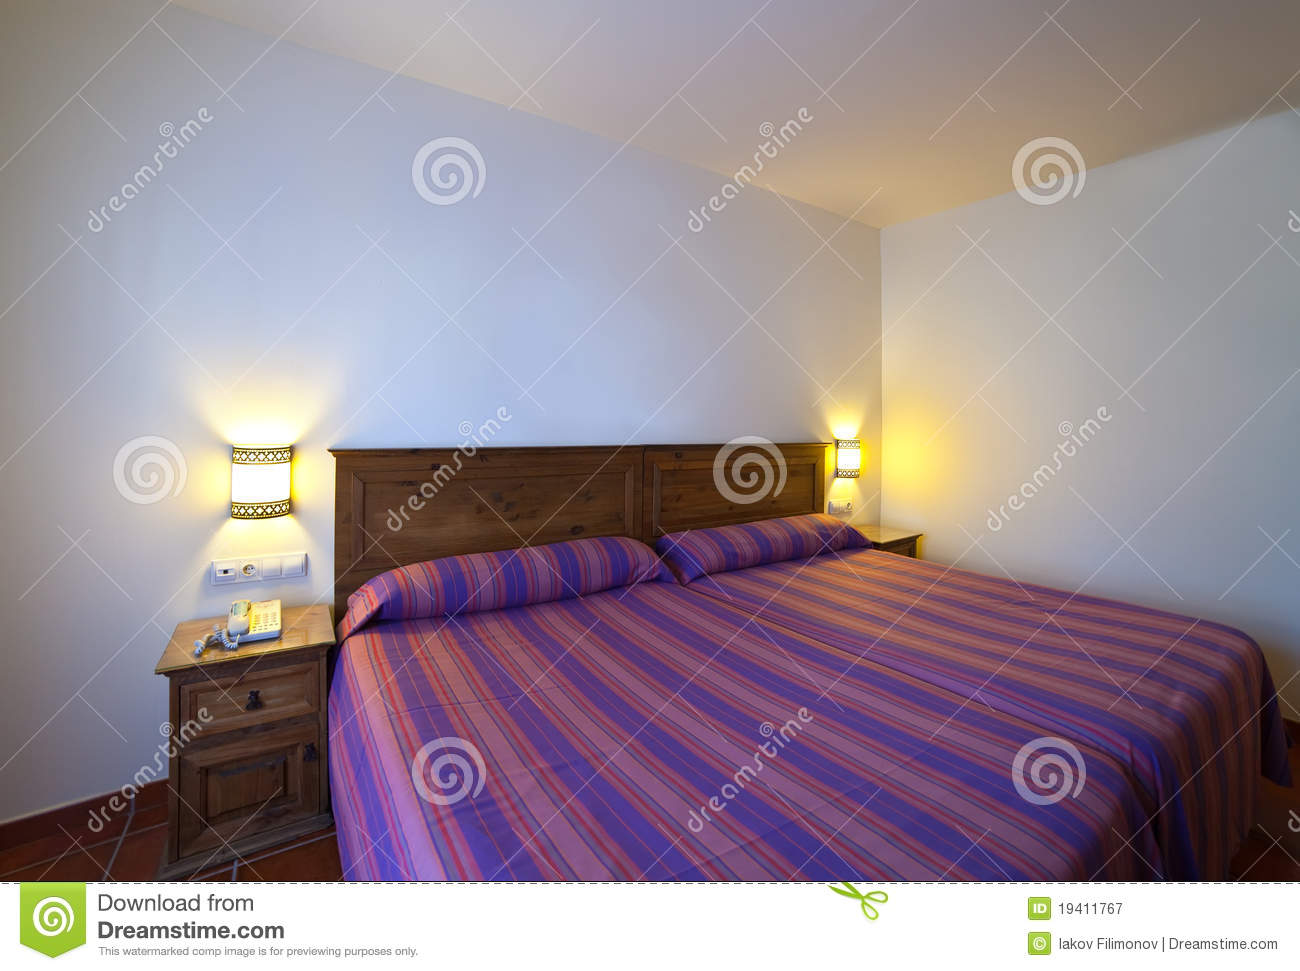 Interior of simple bedroom royalty free stock photography image 19411767 - Image of simple bedroom ...